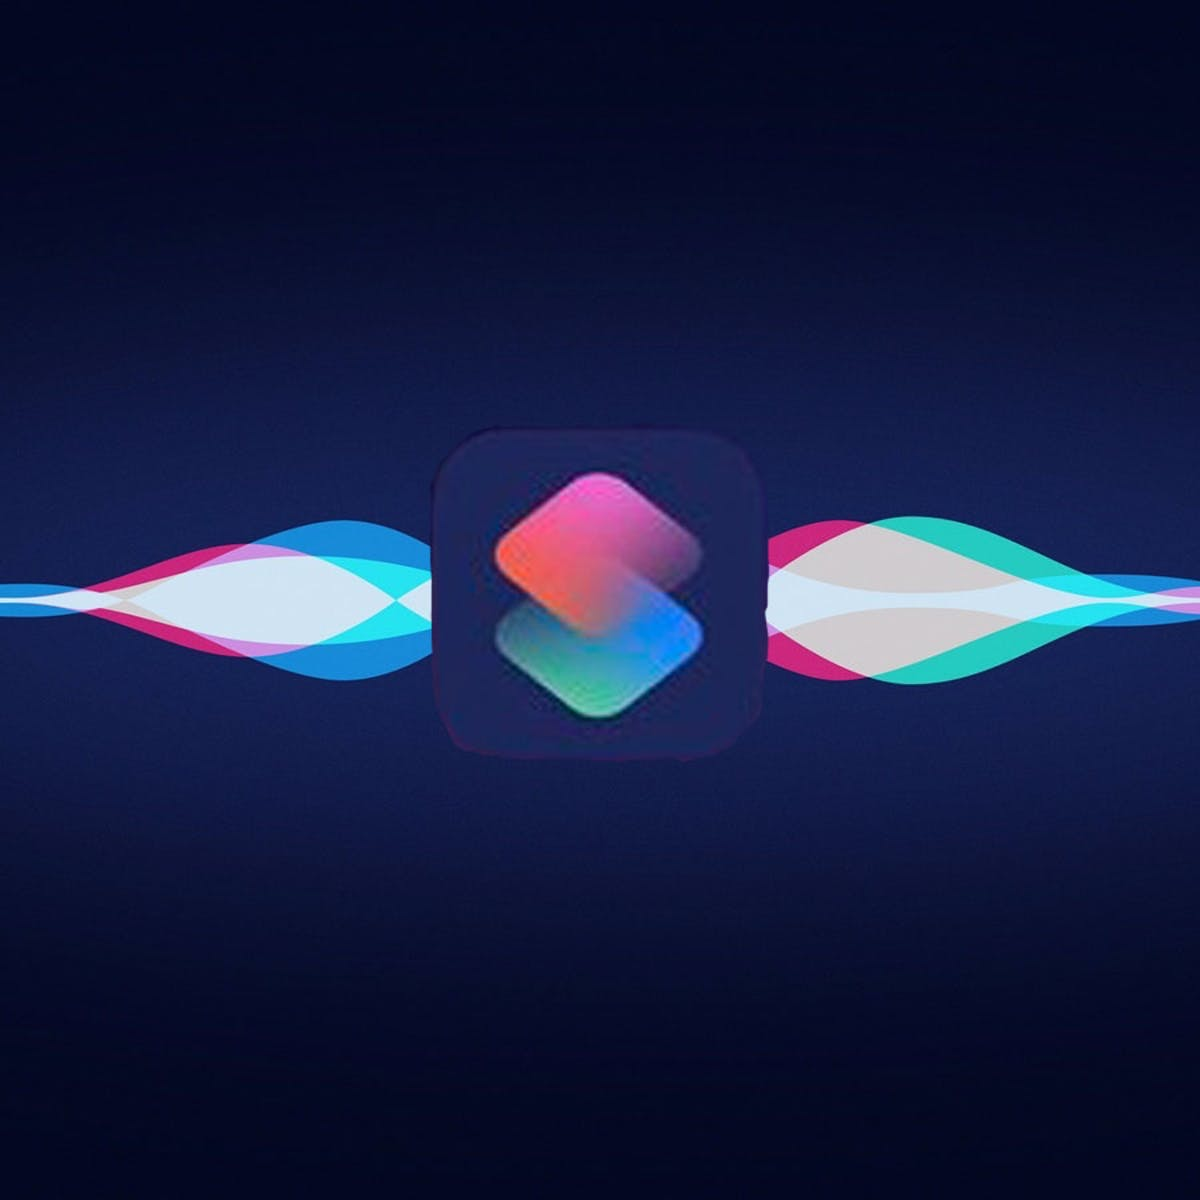 iOS 12: How to Make Amazing Personalized Siri Voice Commands With Shortcuts